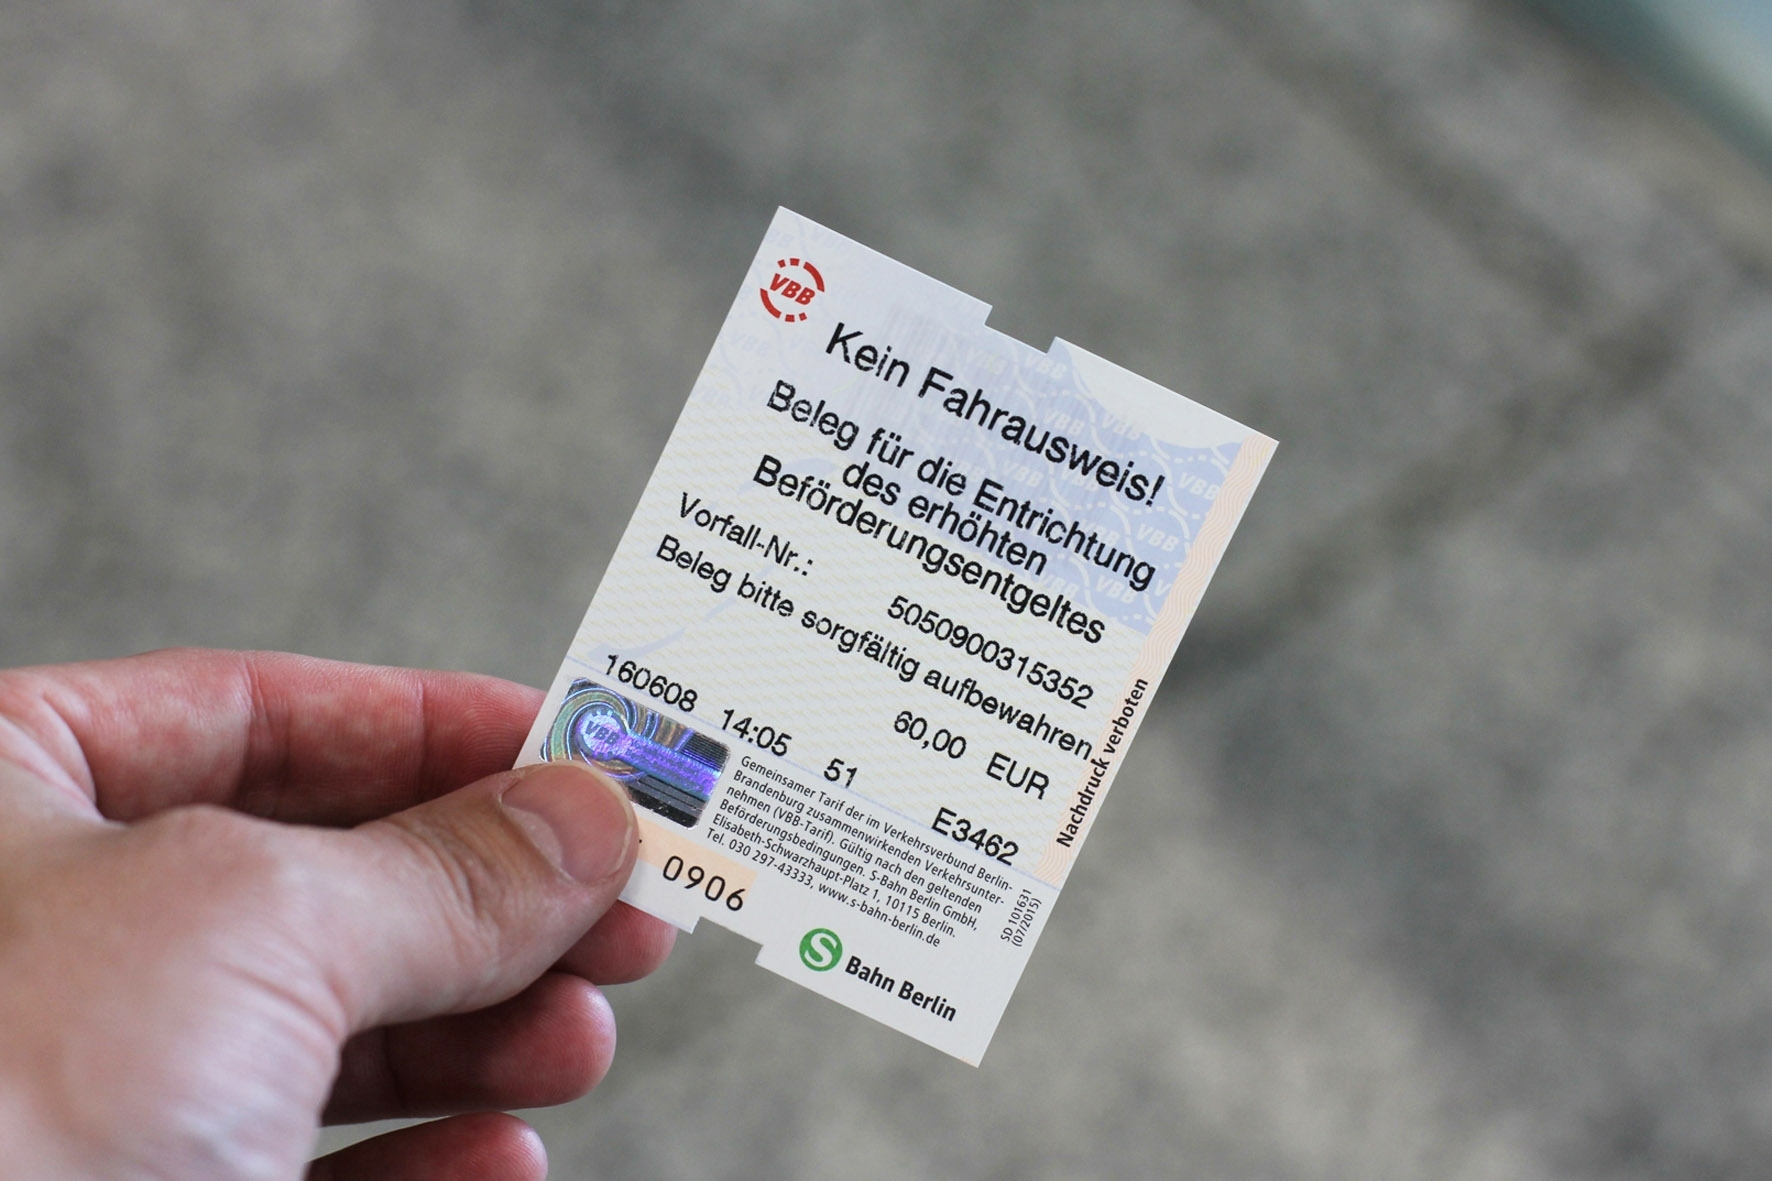 Getting Caught Without A Valid Ticket On Berlin Public Transport And inside Berlin Ticket Bahn